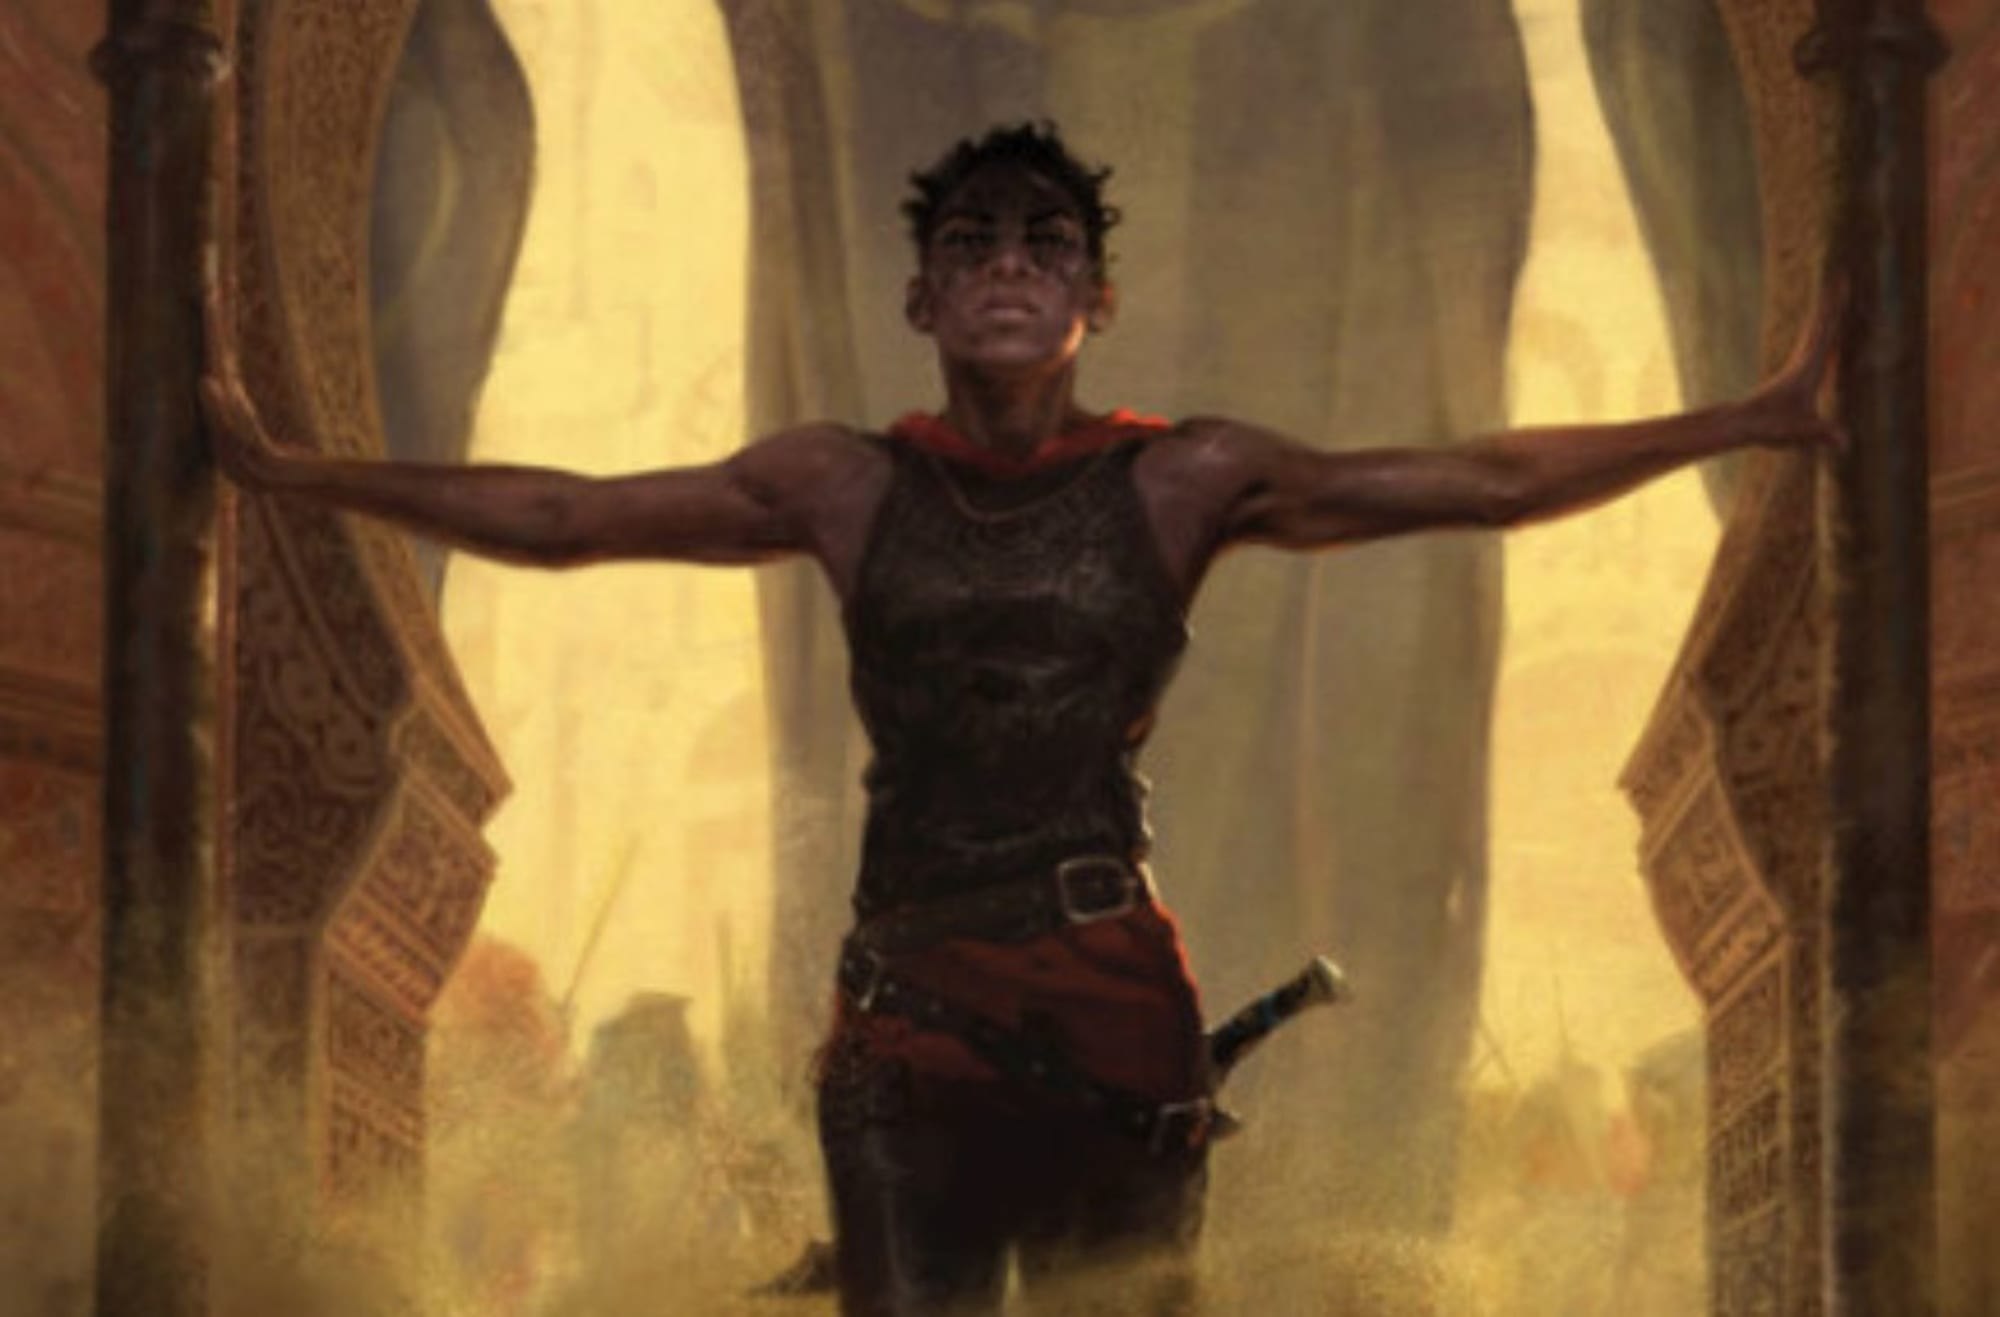 15 new Fantasy and Science Fiction books to read in 2021